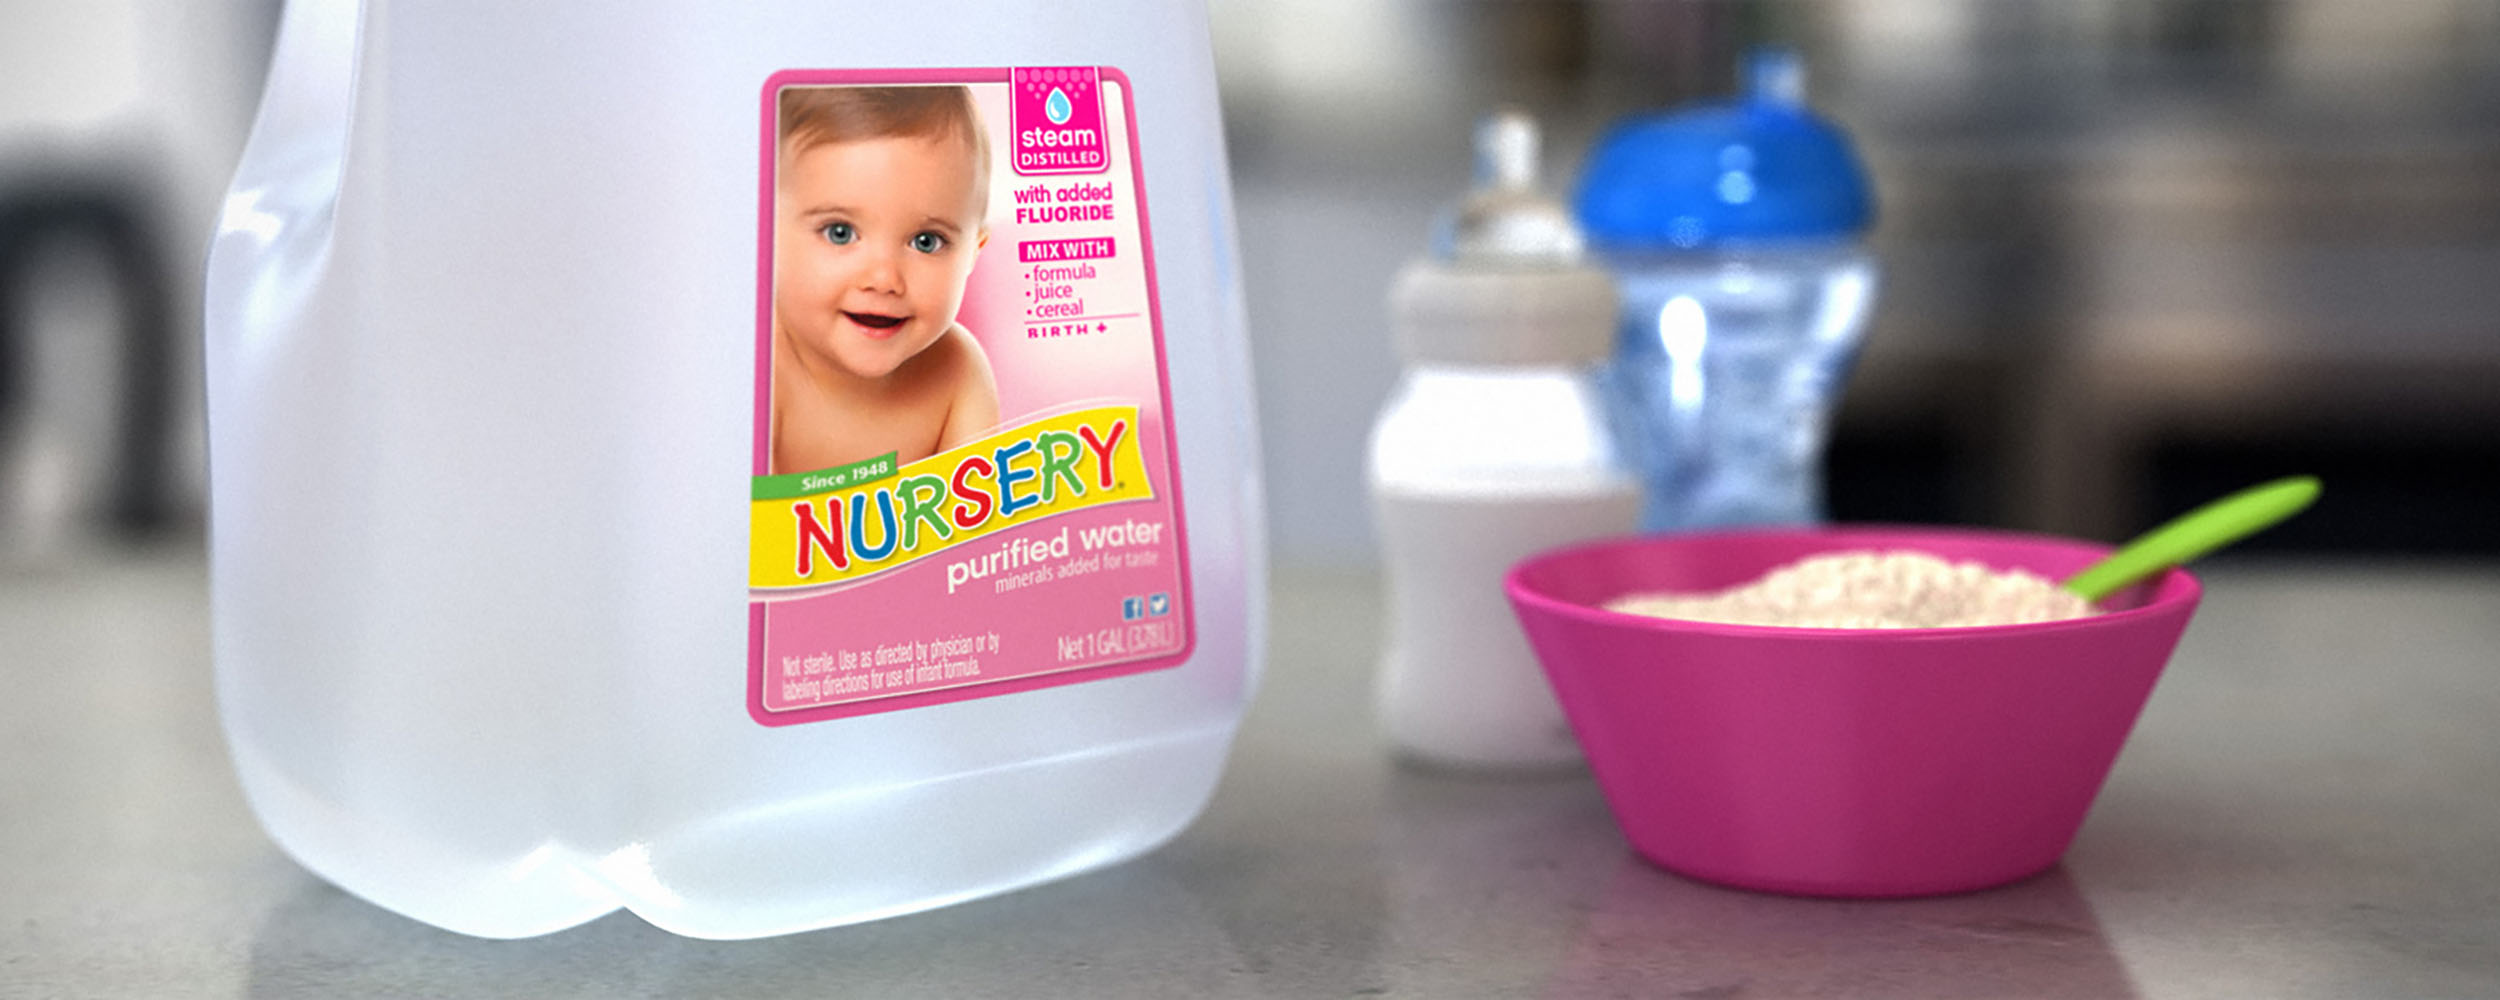 nursery water gallon next to bowl of porridge